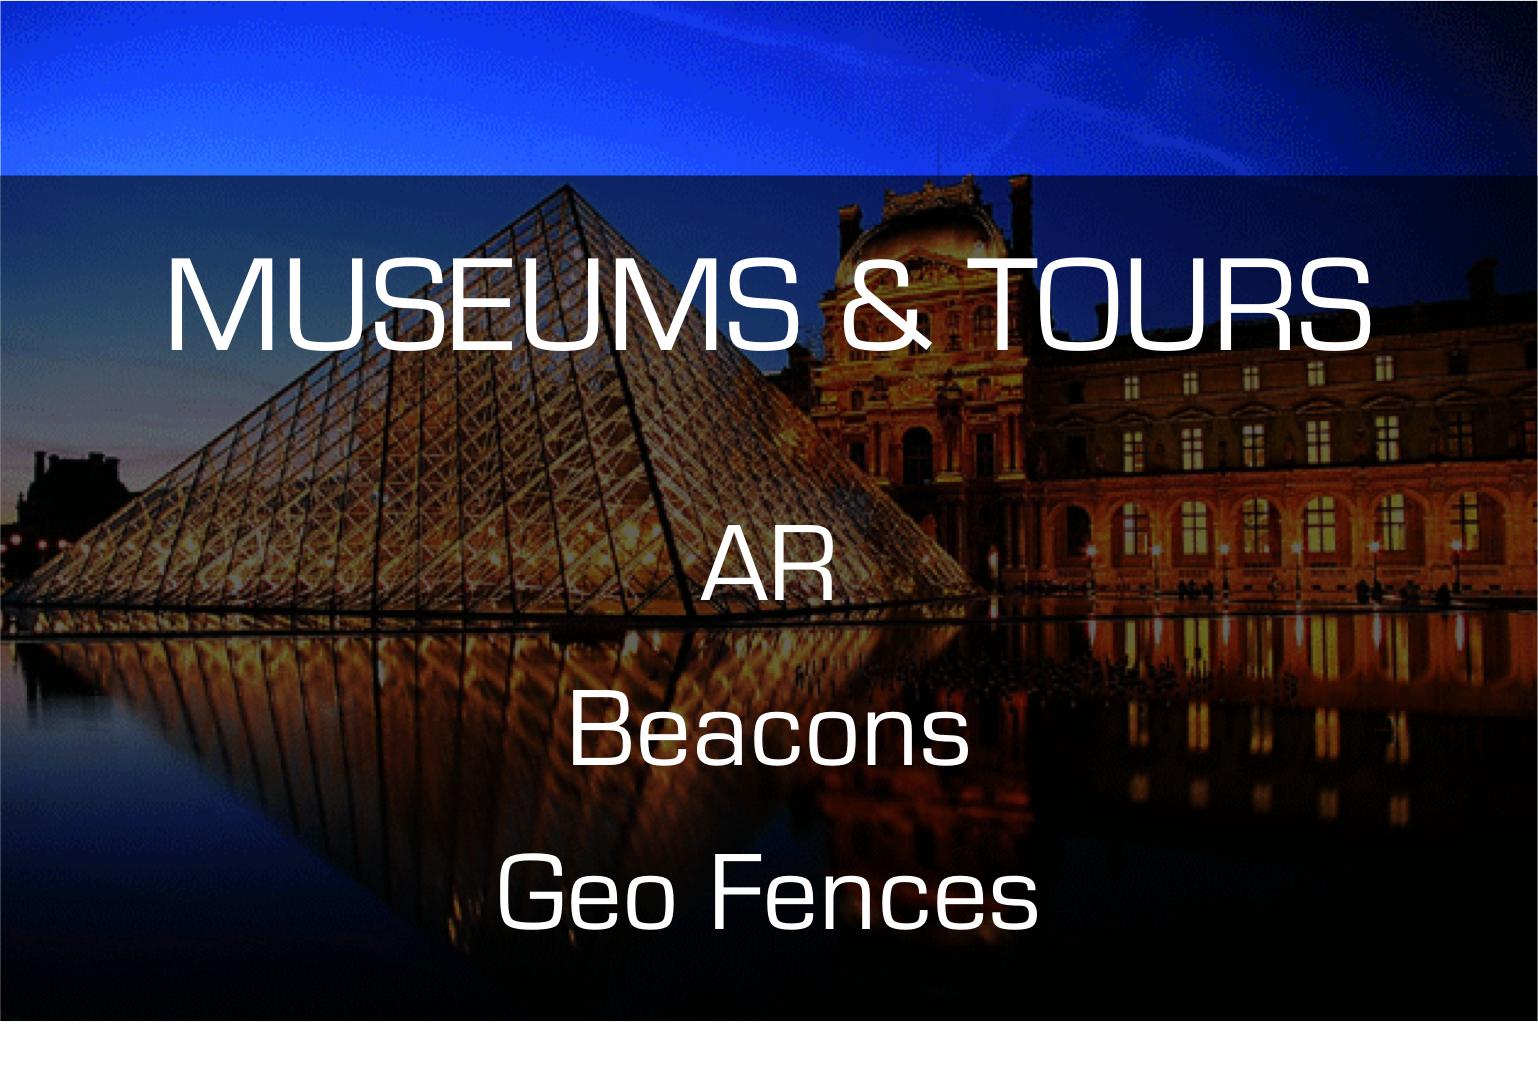 Museum and tours mobile apps - AR, Beacons an Geo Fences